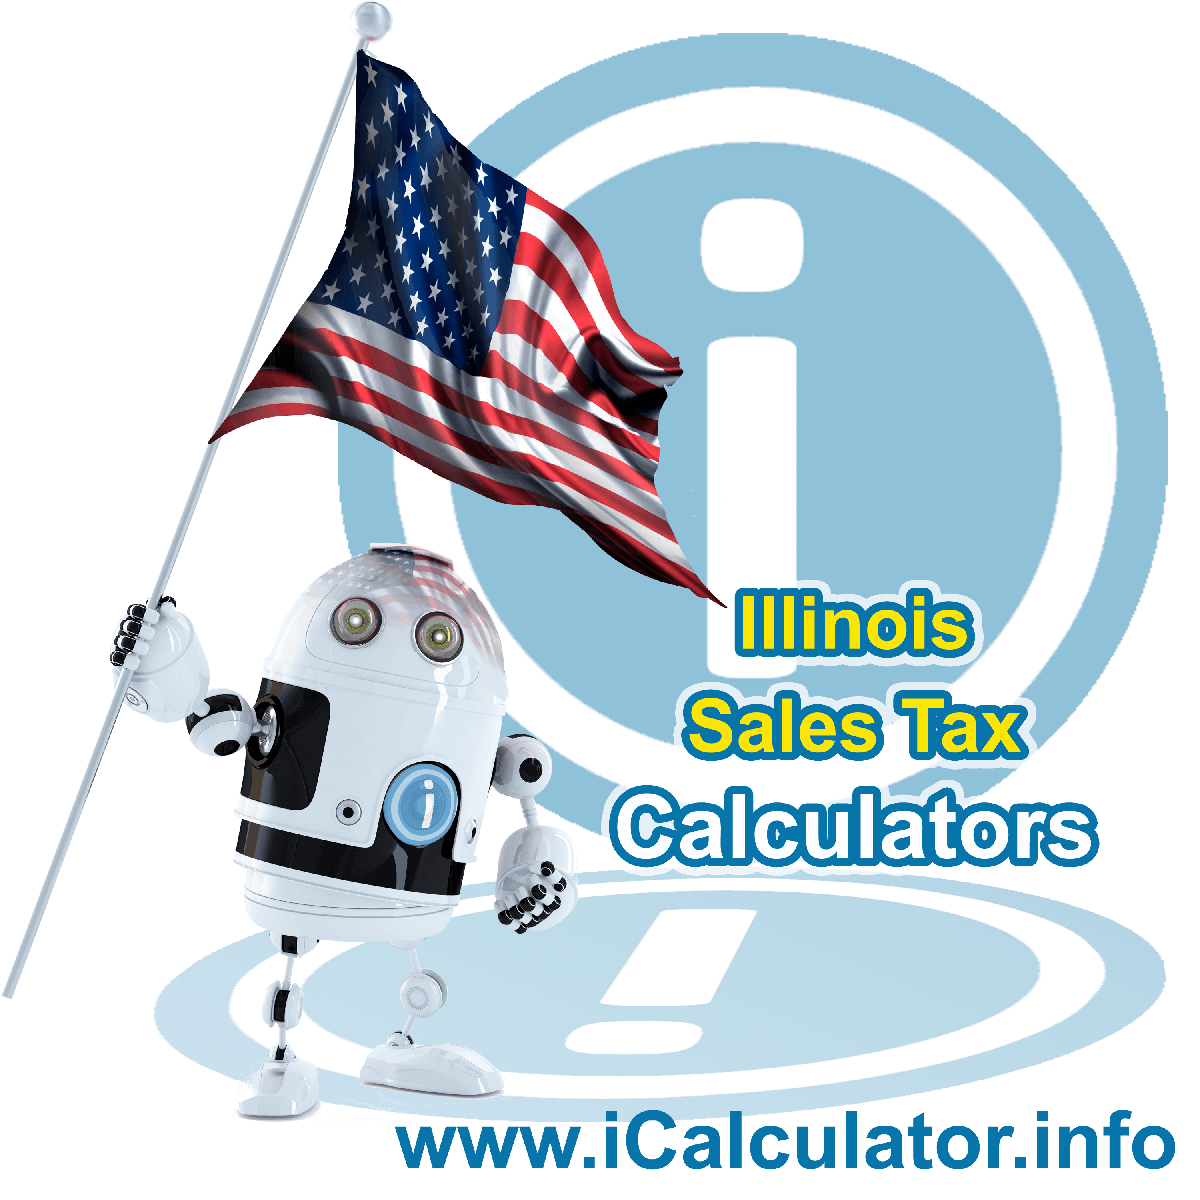 Industry Sales Rates: This image illustrates a calculator robot calculating Industry sales tax manually using the Industry Sales Tax Formula. You can use this information to calculate Industry Sales Tax manually or use the Industry Sales Tax Calculator to calculate sales tax online.